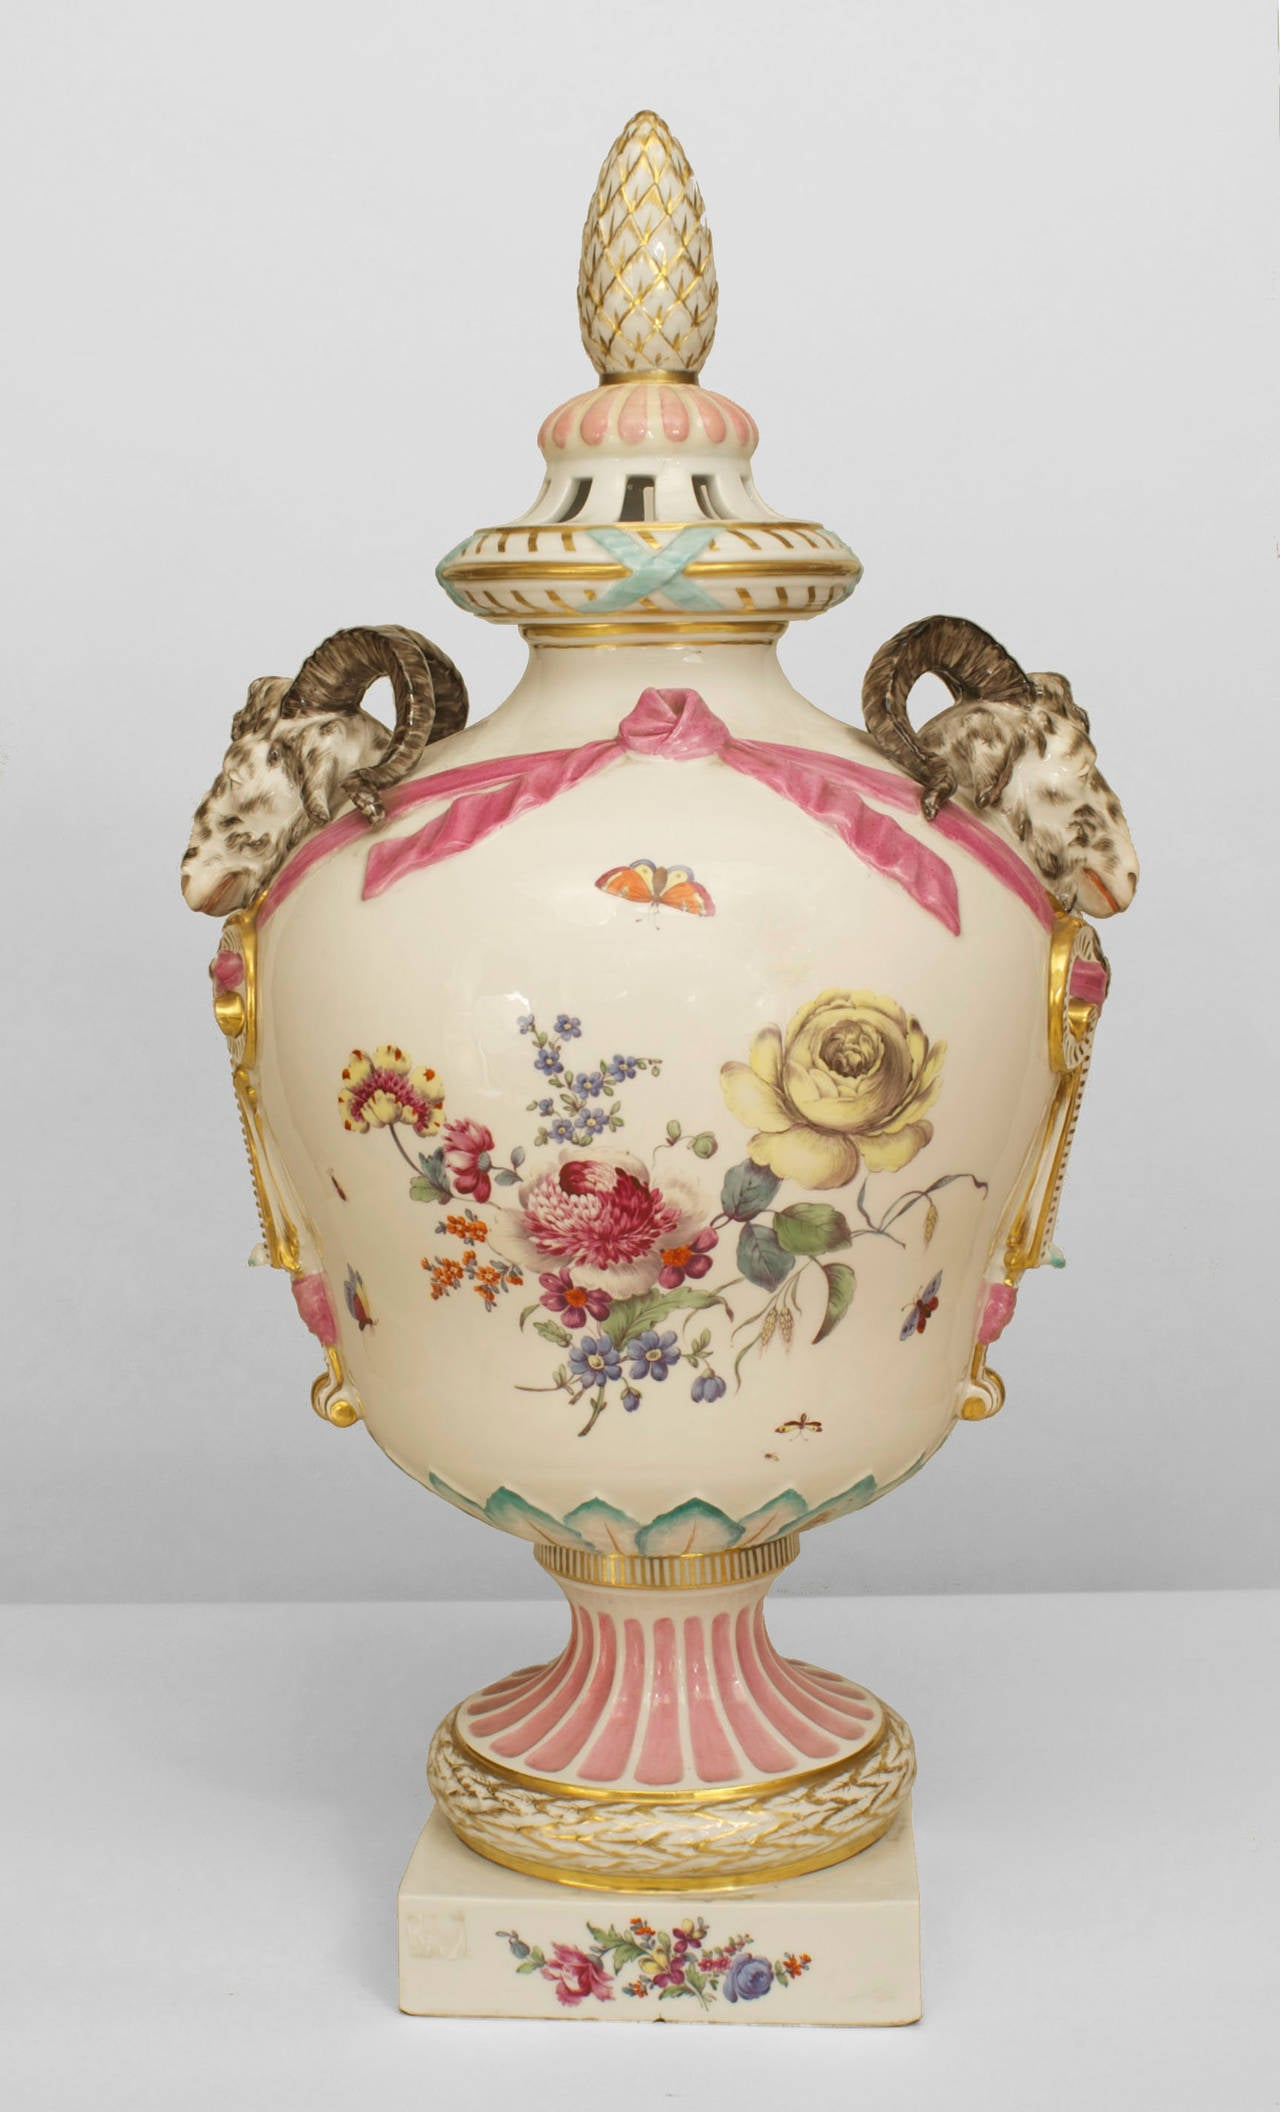 A Fine 18th Century Continental German Porcelain Decorated